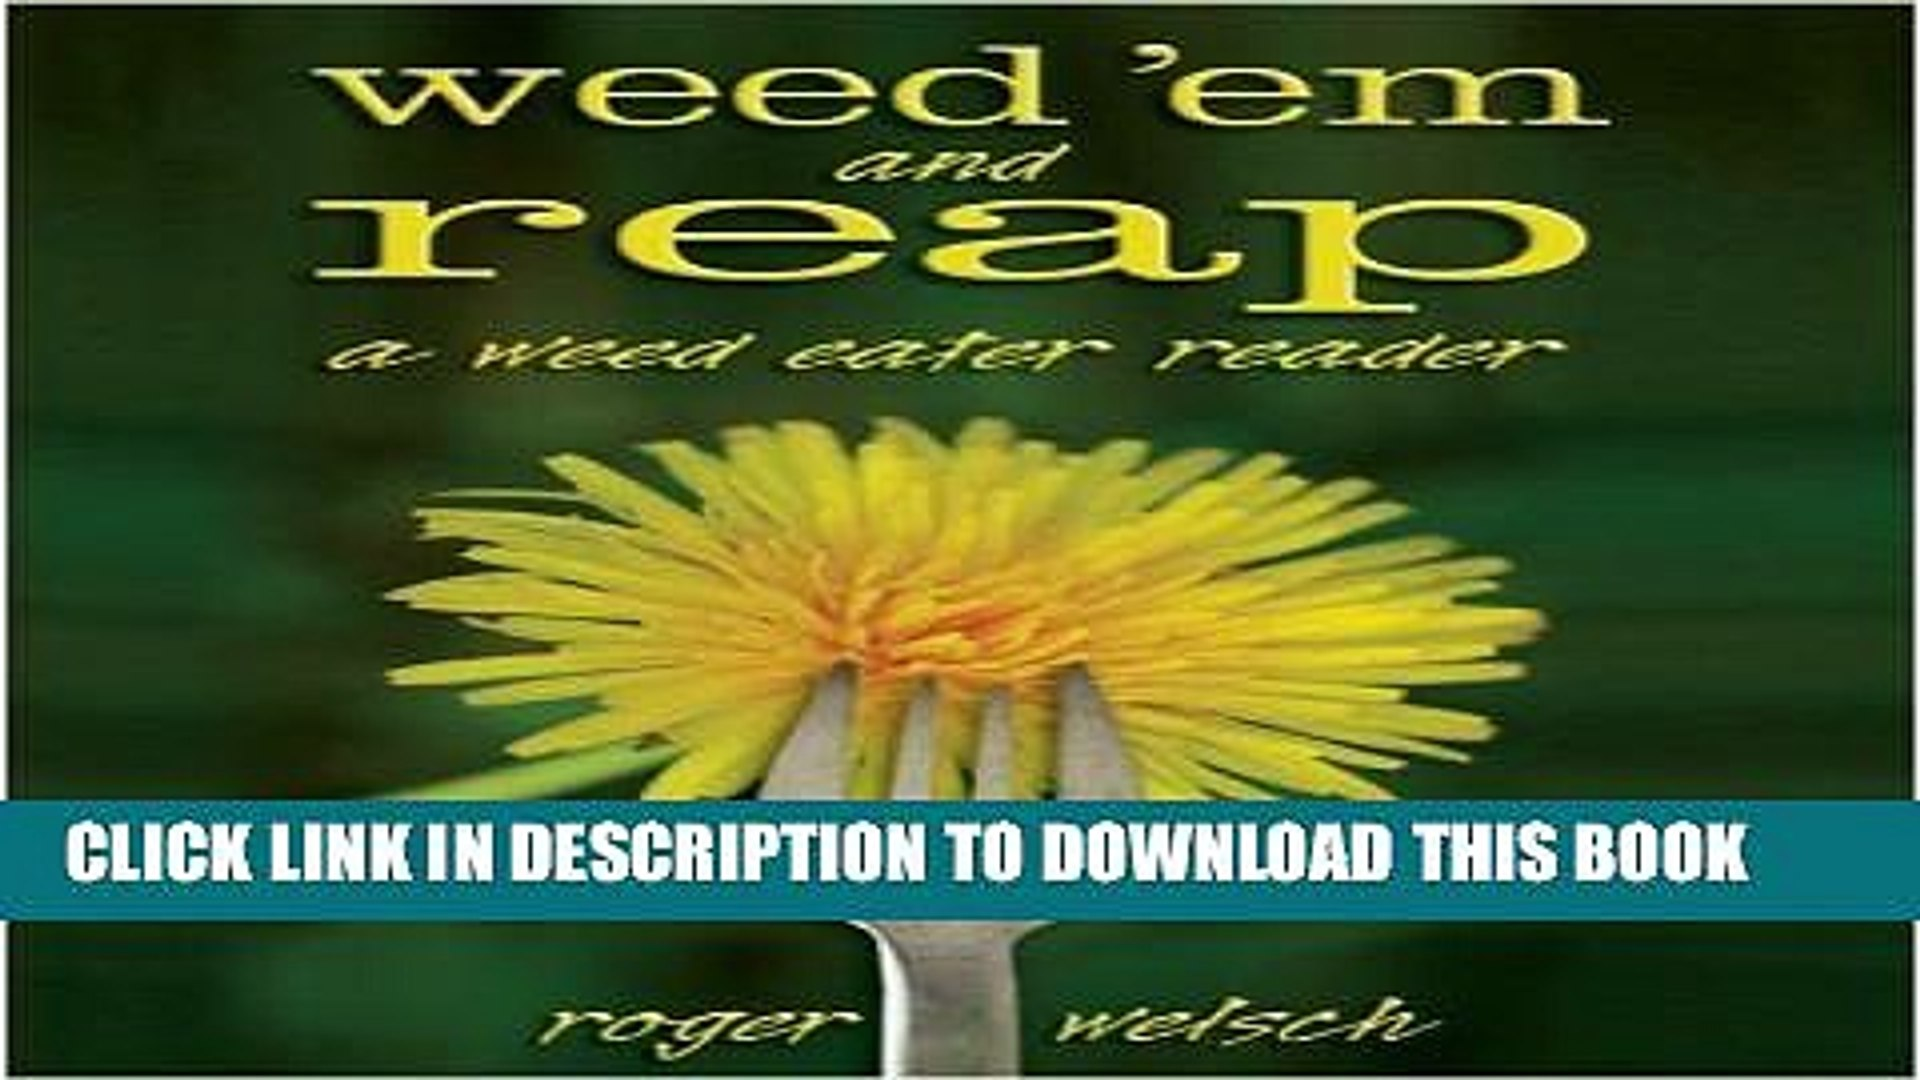 A Weed Eater Reader Weed Em and Reap